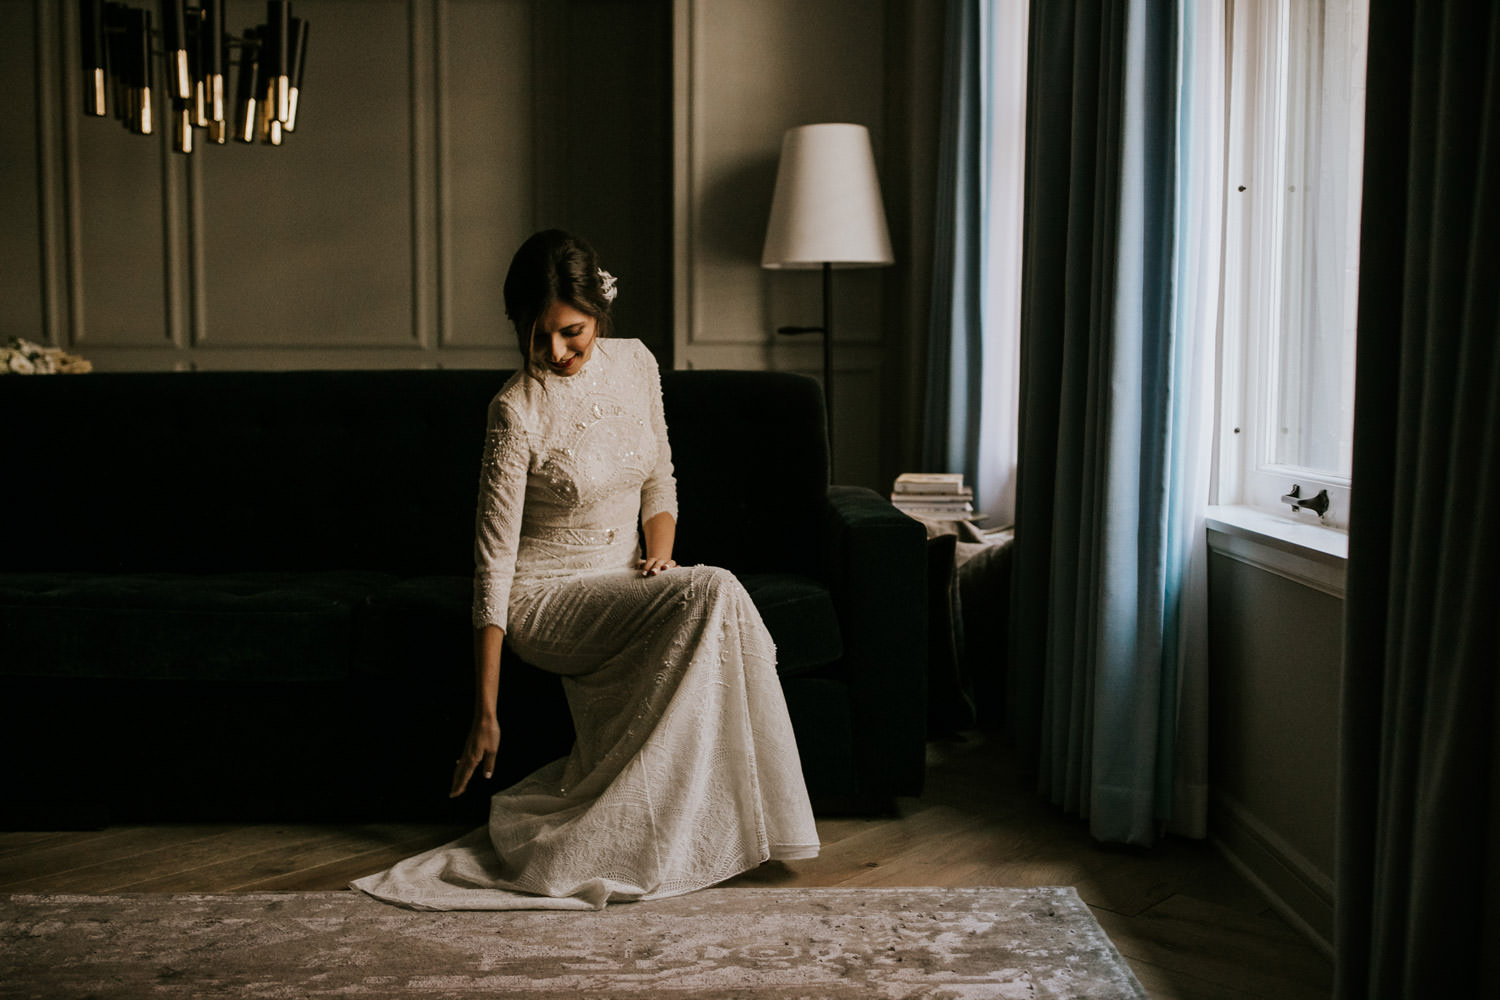 documentary wedding photographer capture the portrait of the bride before the wedding ceremony at the gray hotel in Chicago